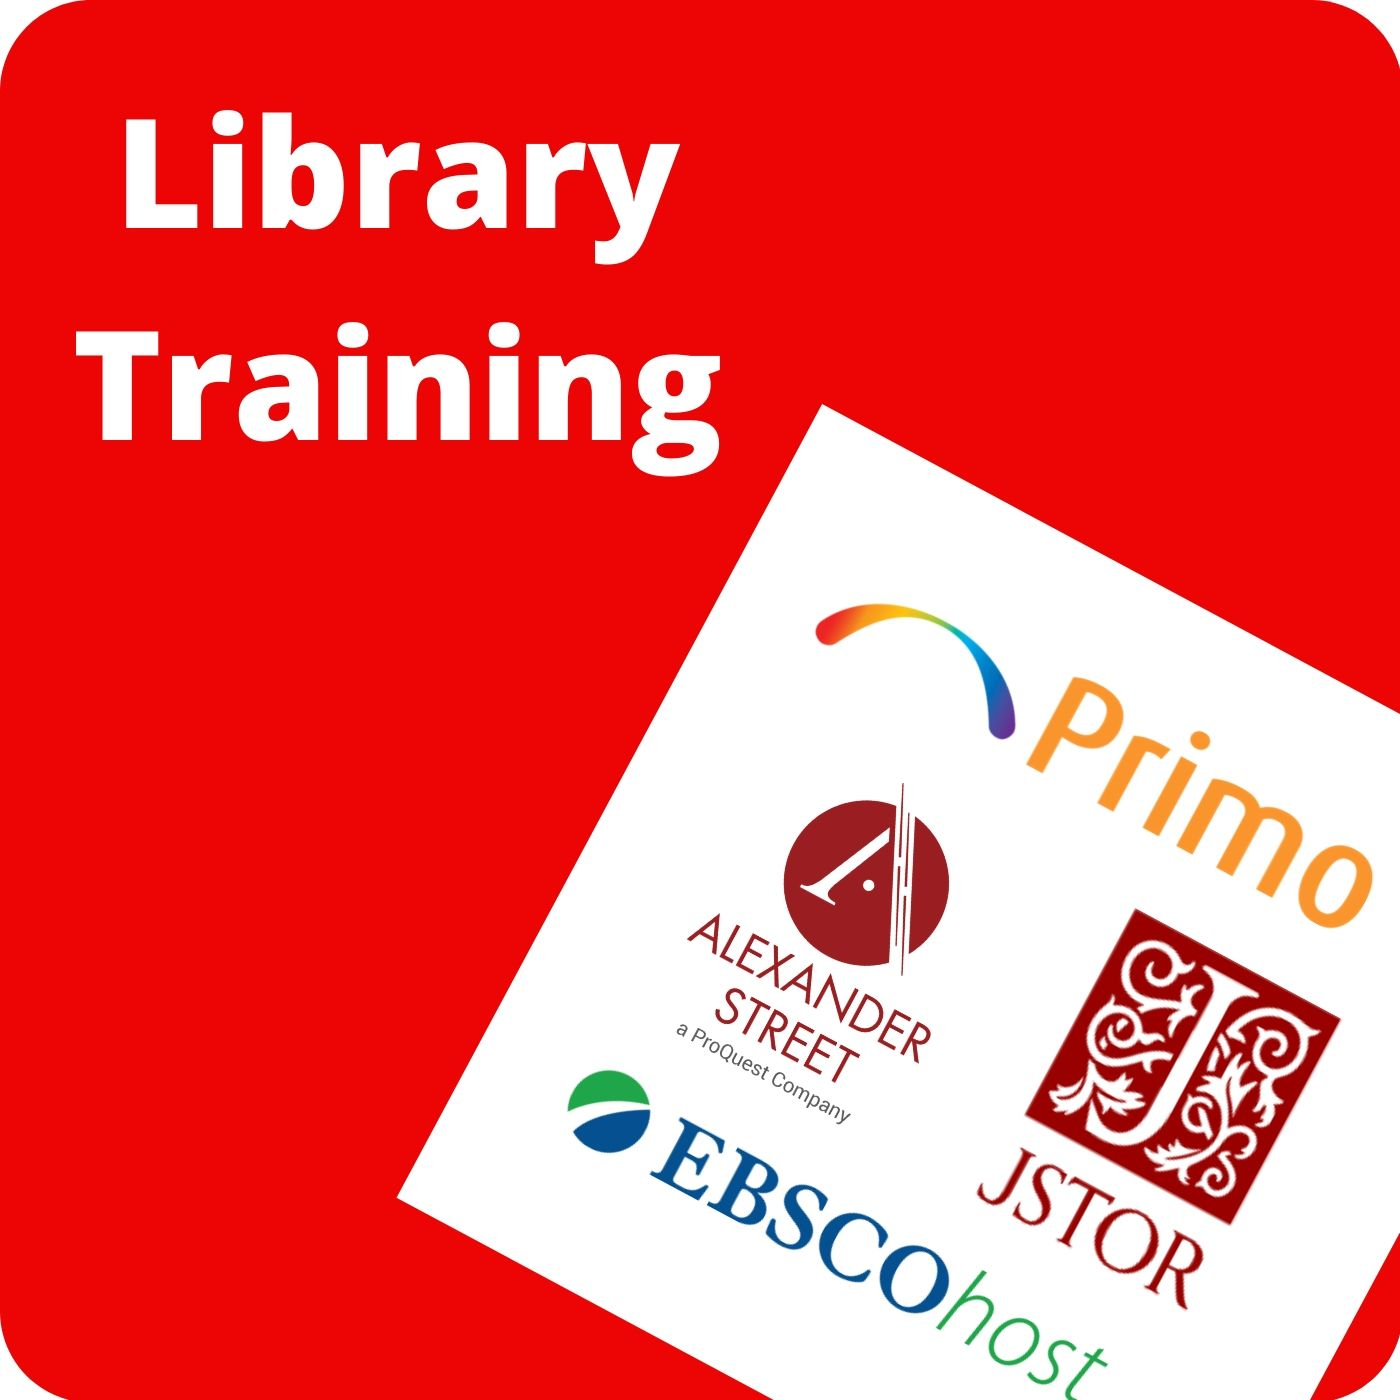 Library training shortcut